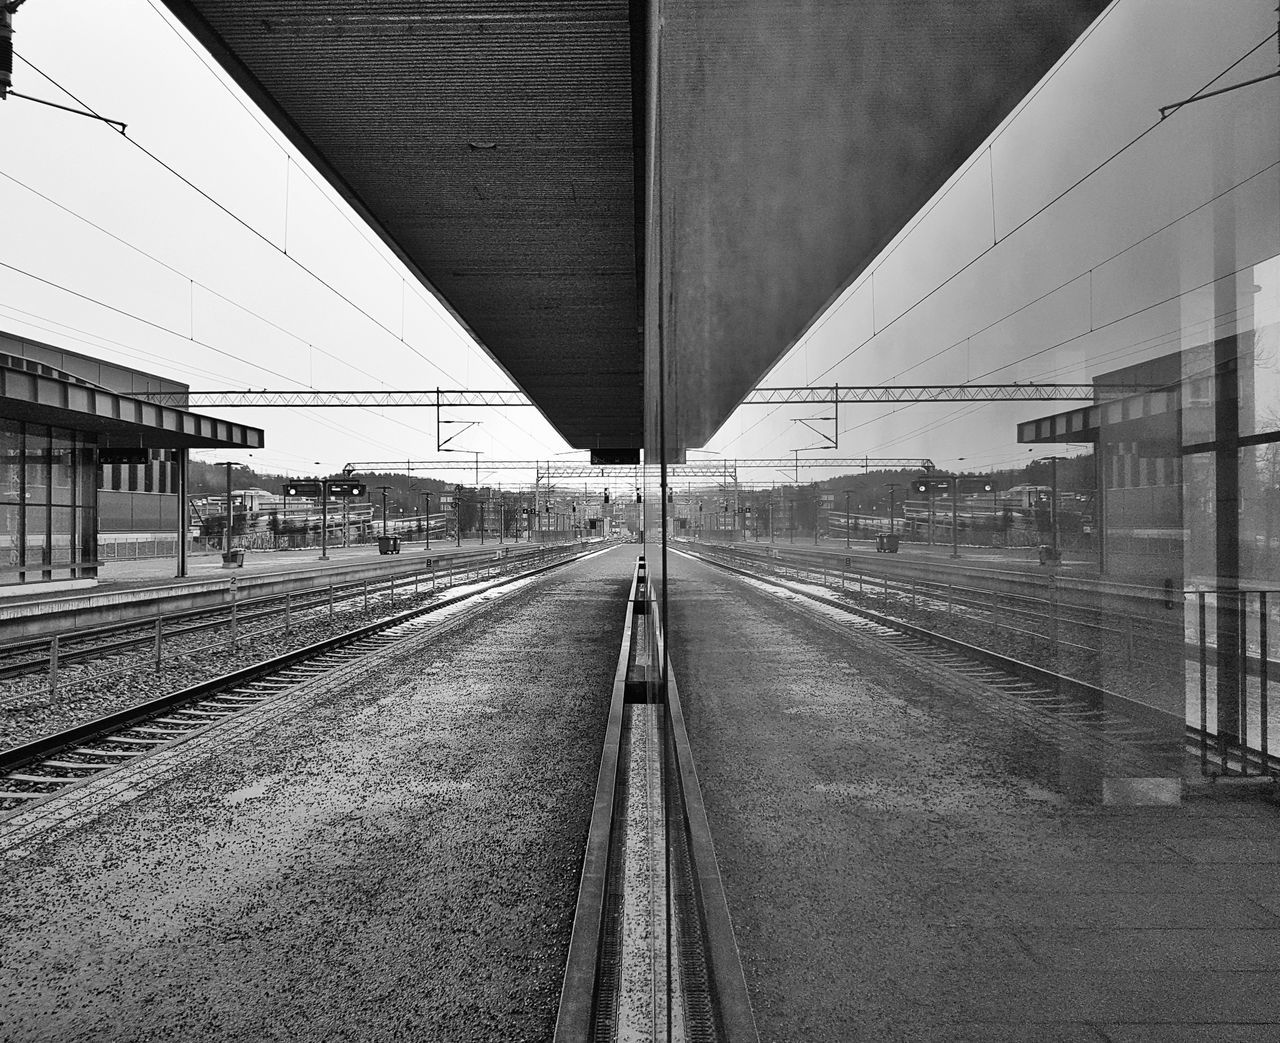 Transportation Railroad Track Day No People Outdoors Architecture Sky Black And White Samsung Galaxy S7 Black & White City Cityscape Built Structure Traveling Home For The Holidays